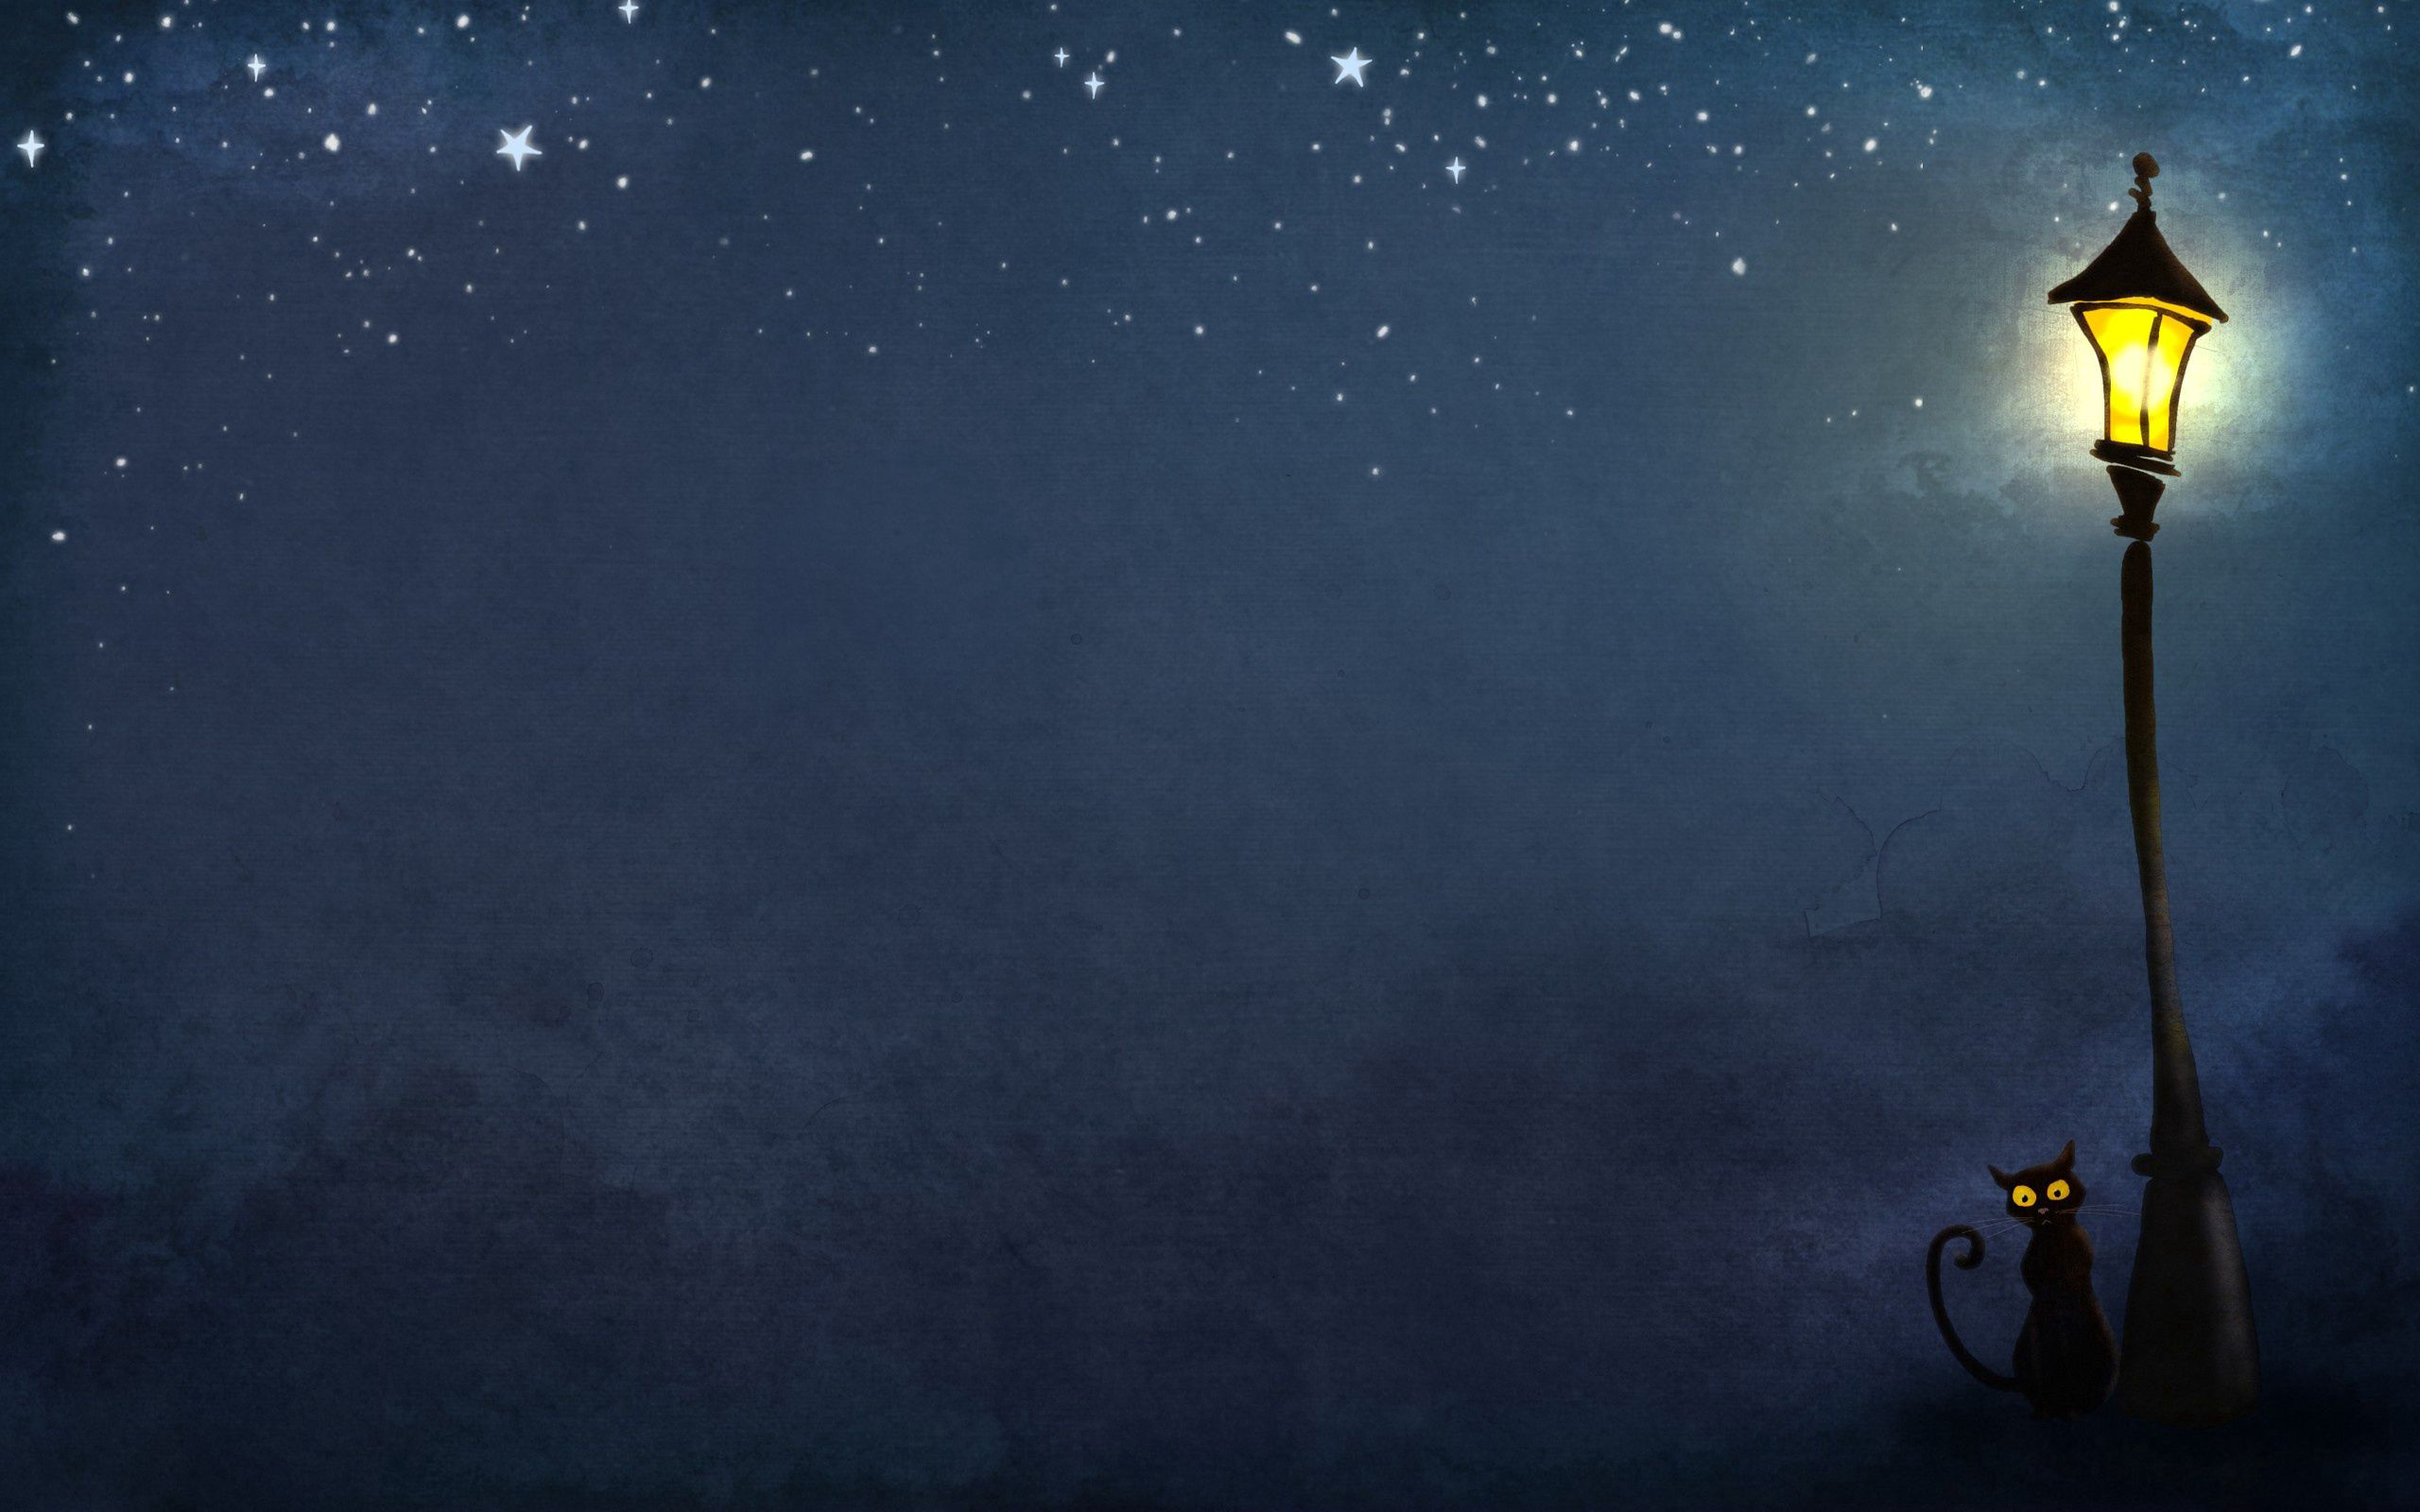 73663 download wallpaper Cats, Art, Night, Lamp, Lantern screensavers and pictures for free